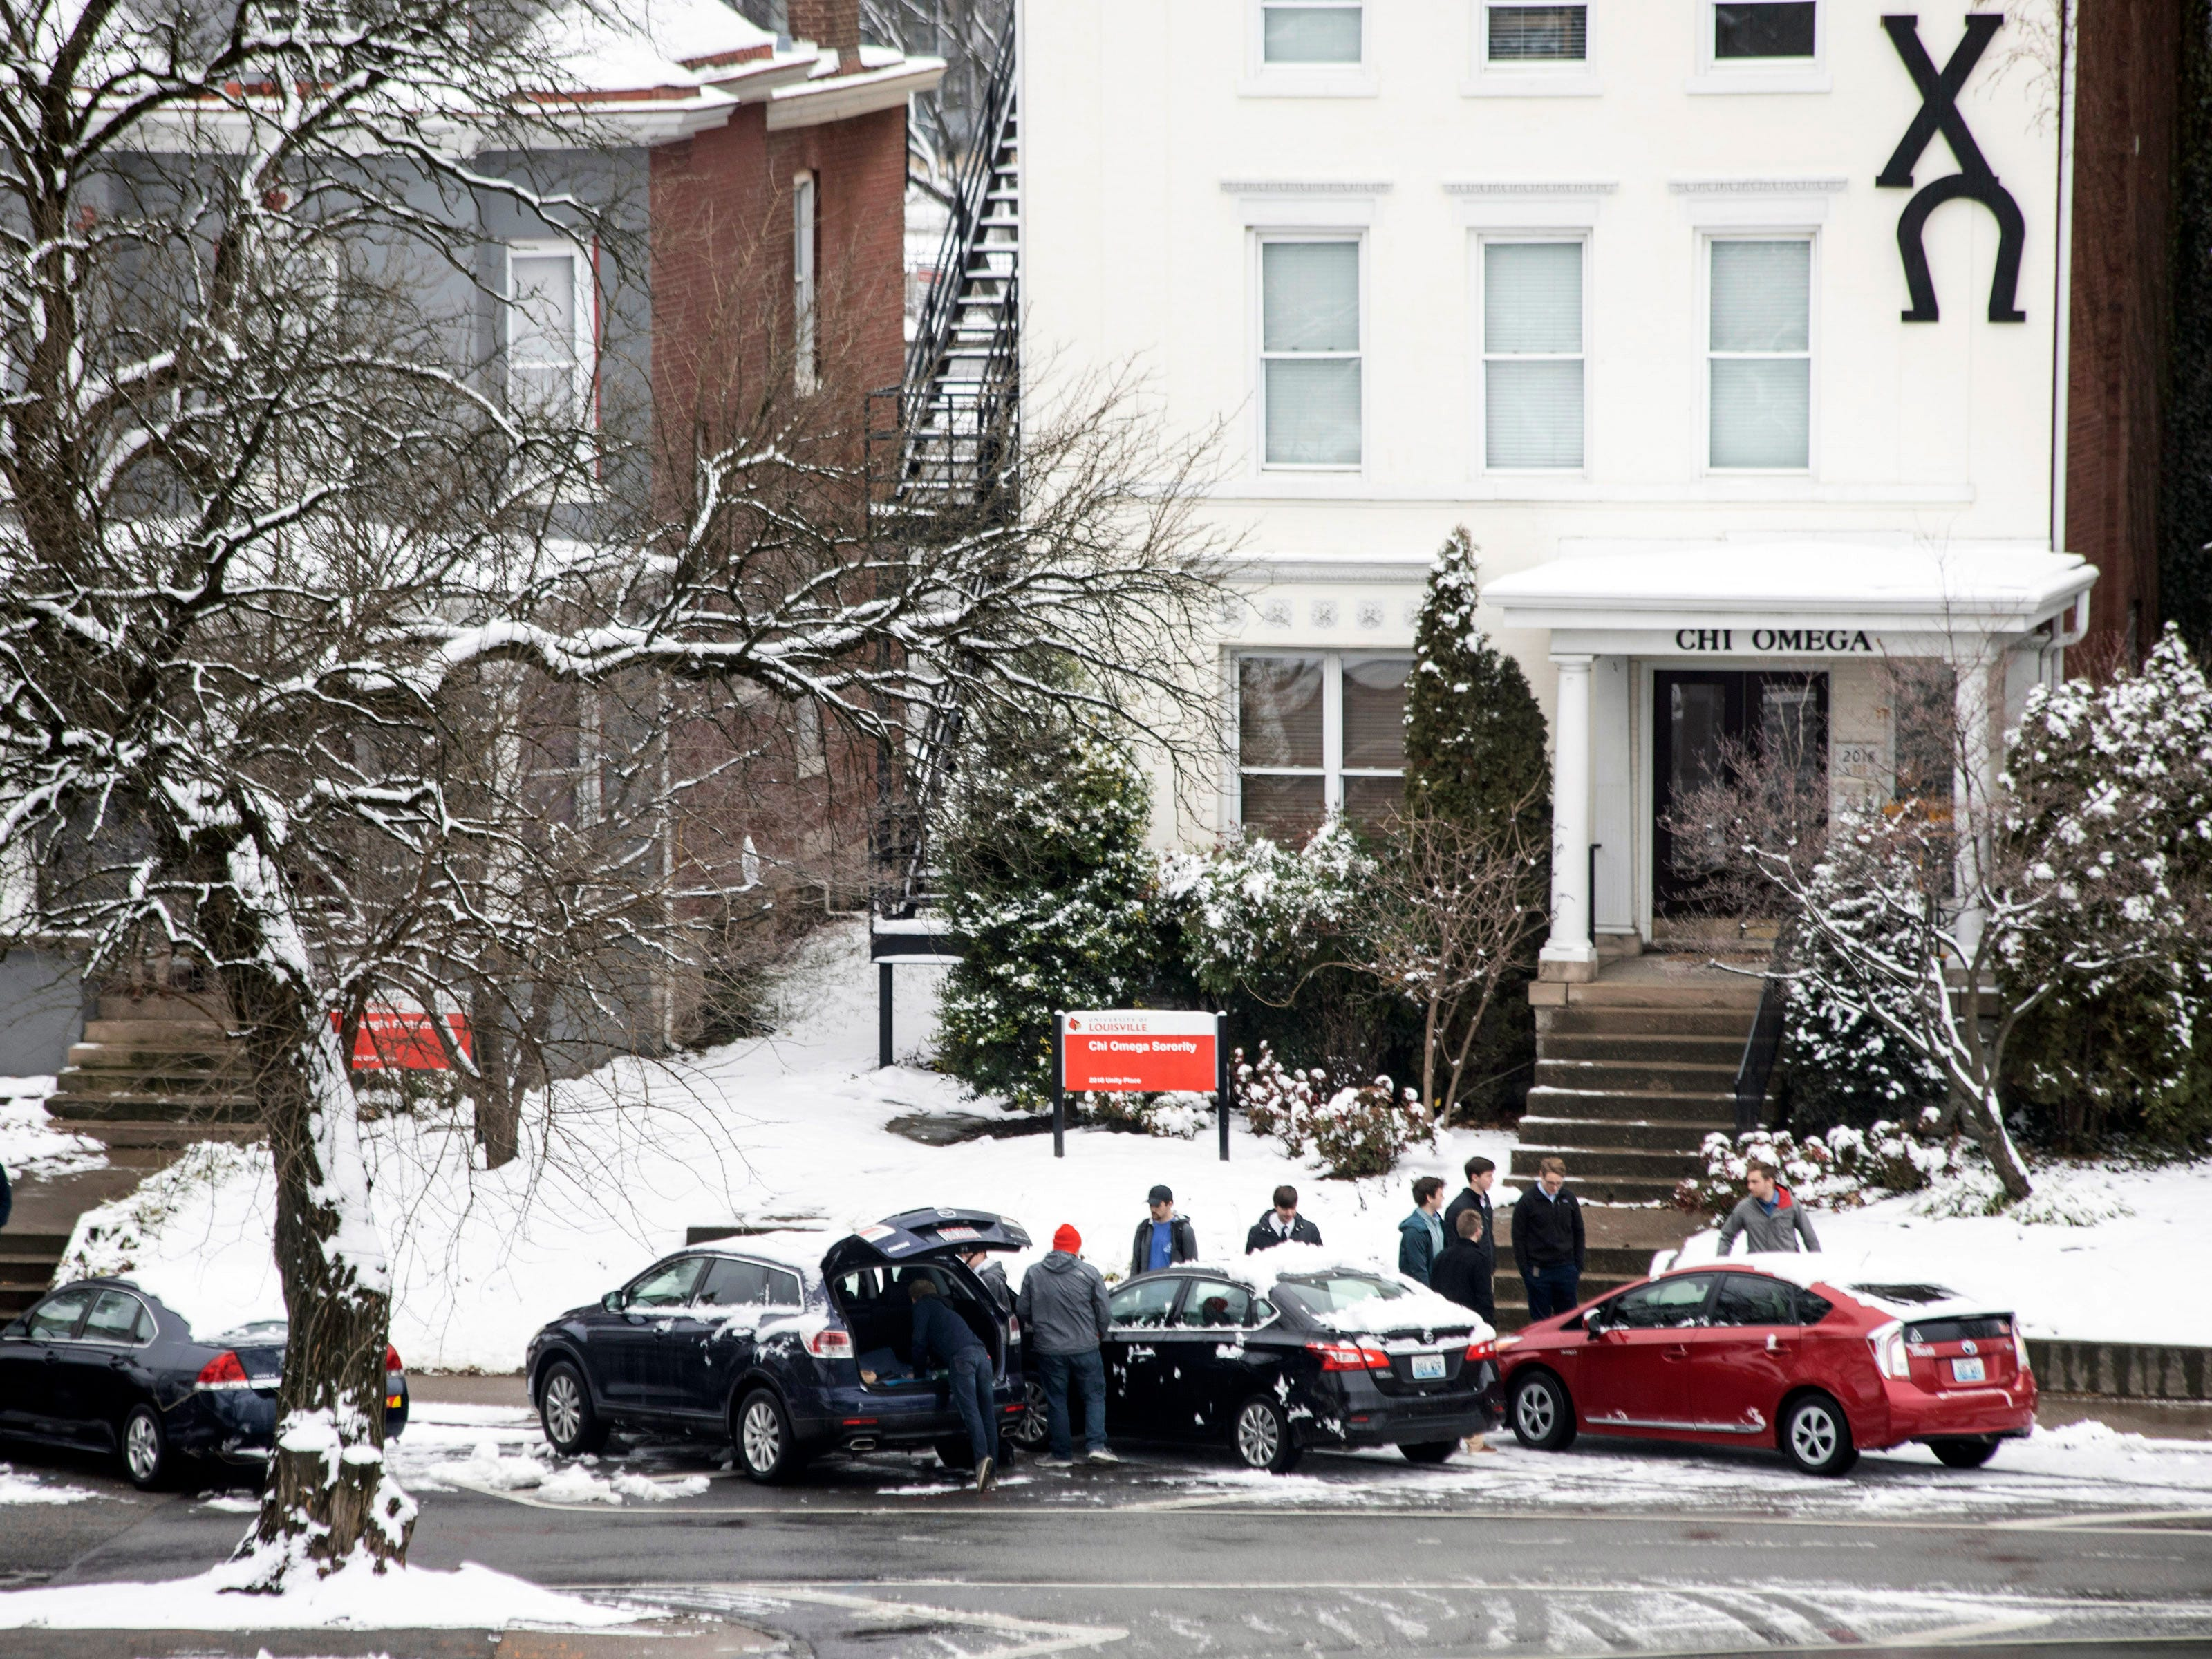 University of Louisville students clear off cars after a late night snowfall blanketed Louisville for the first time in 2019. 1/12/19